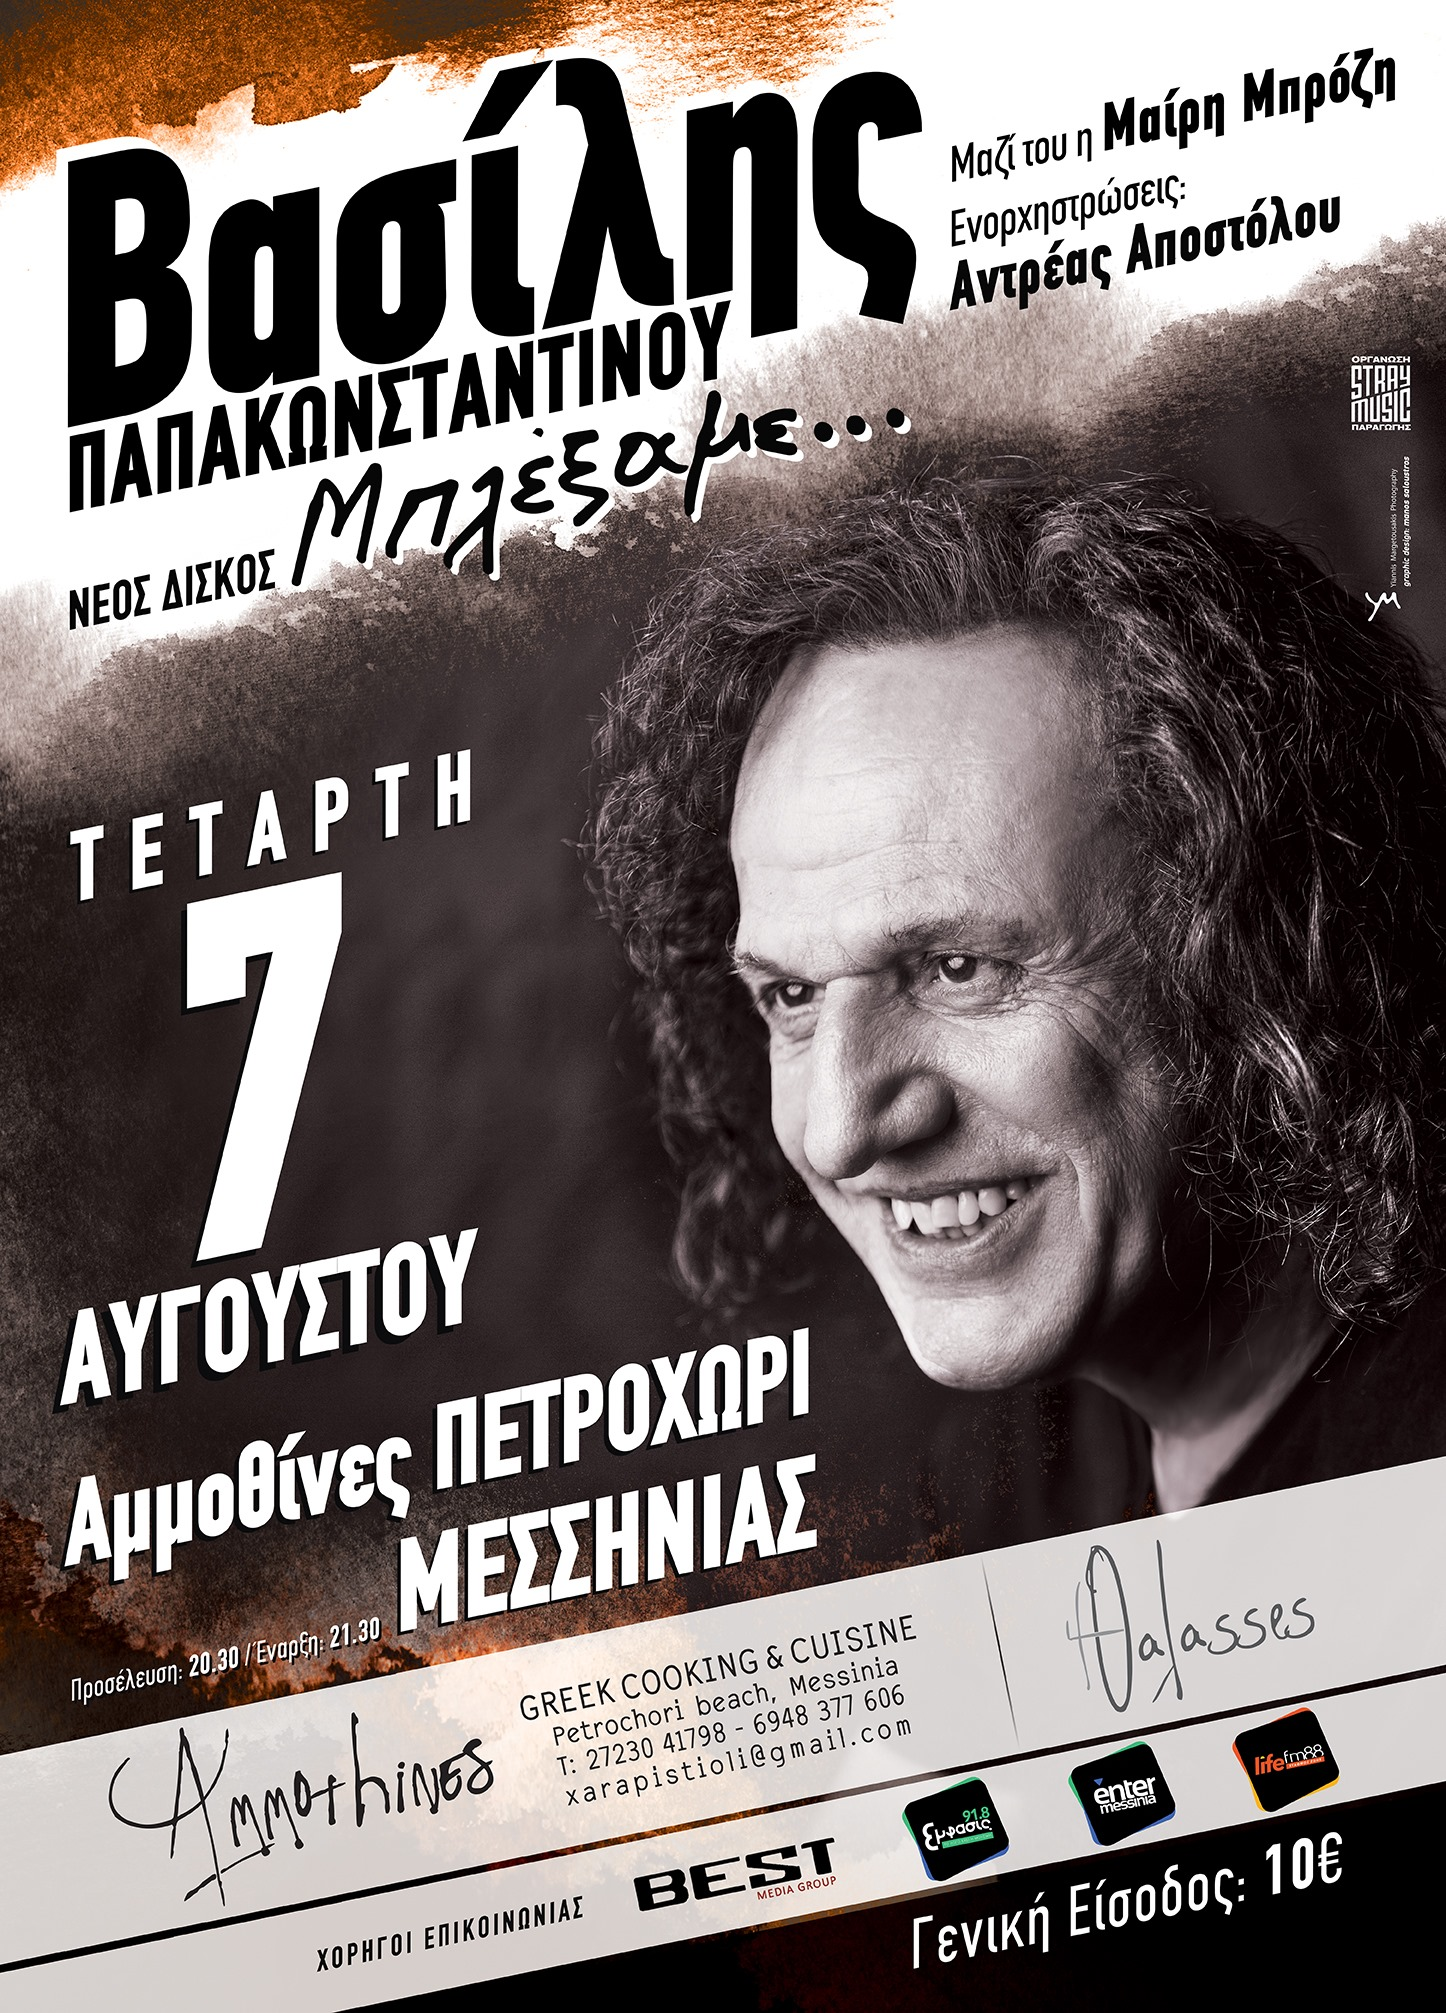 Live που κόβουν την ανάσα στις Ammothines